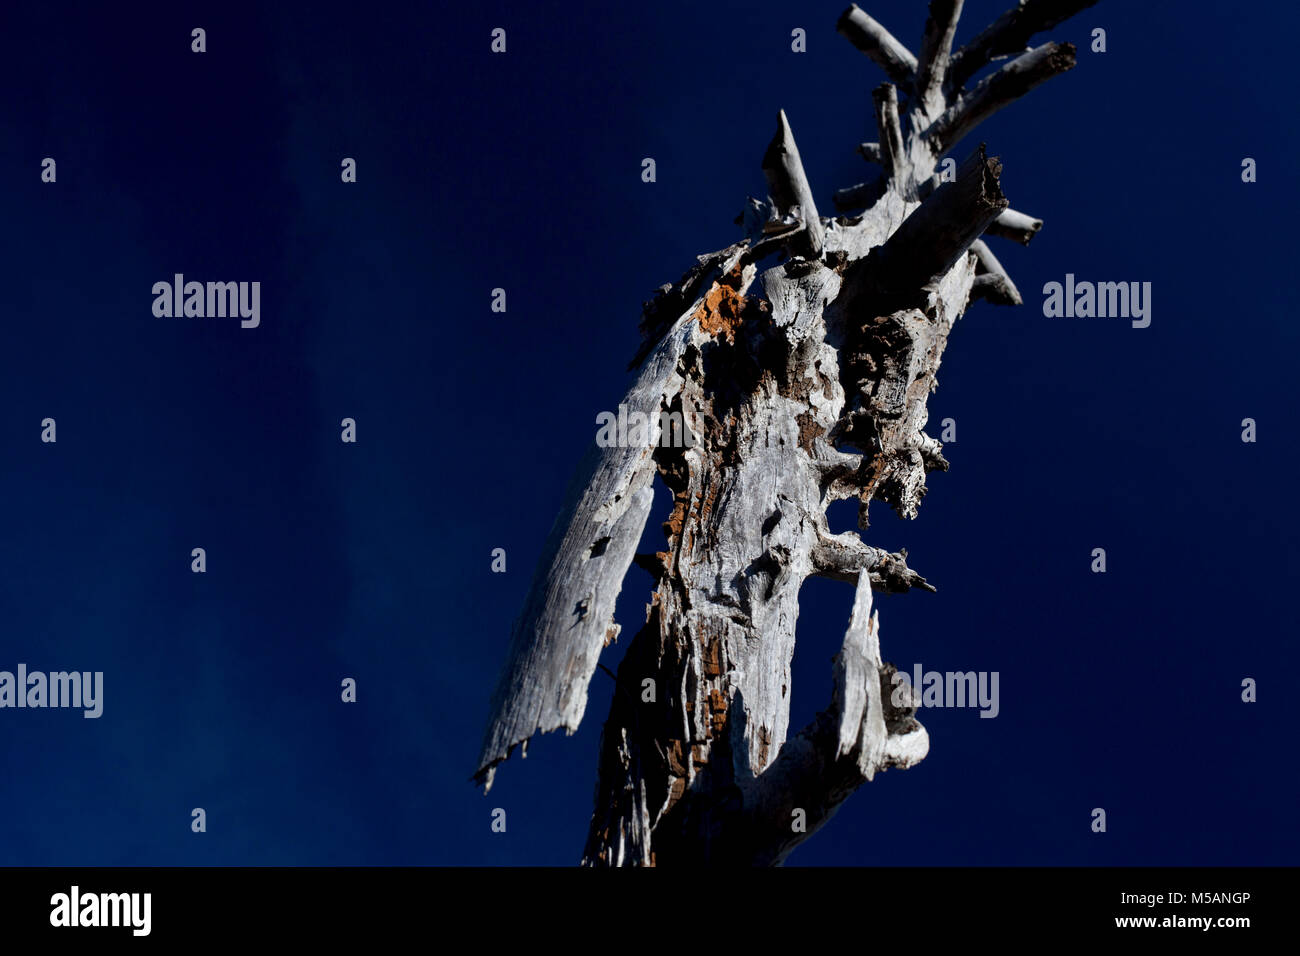 Wind and lightening battered pine tree, Parc dels ports, Tortosa, Spain. - Stock Image